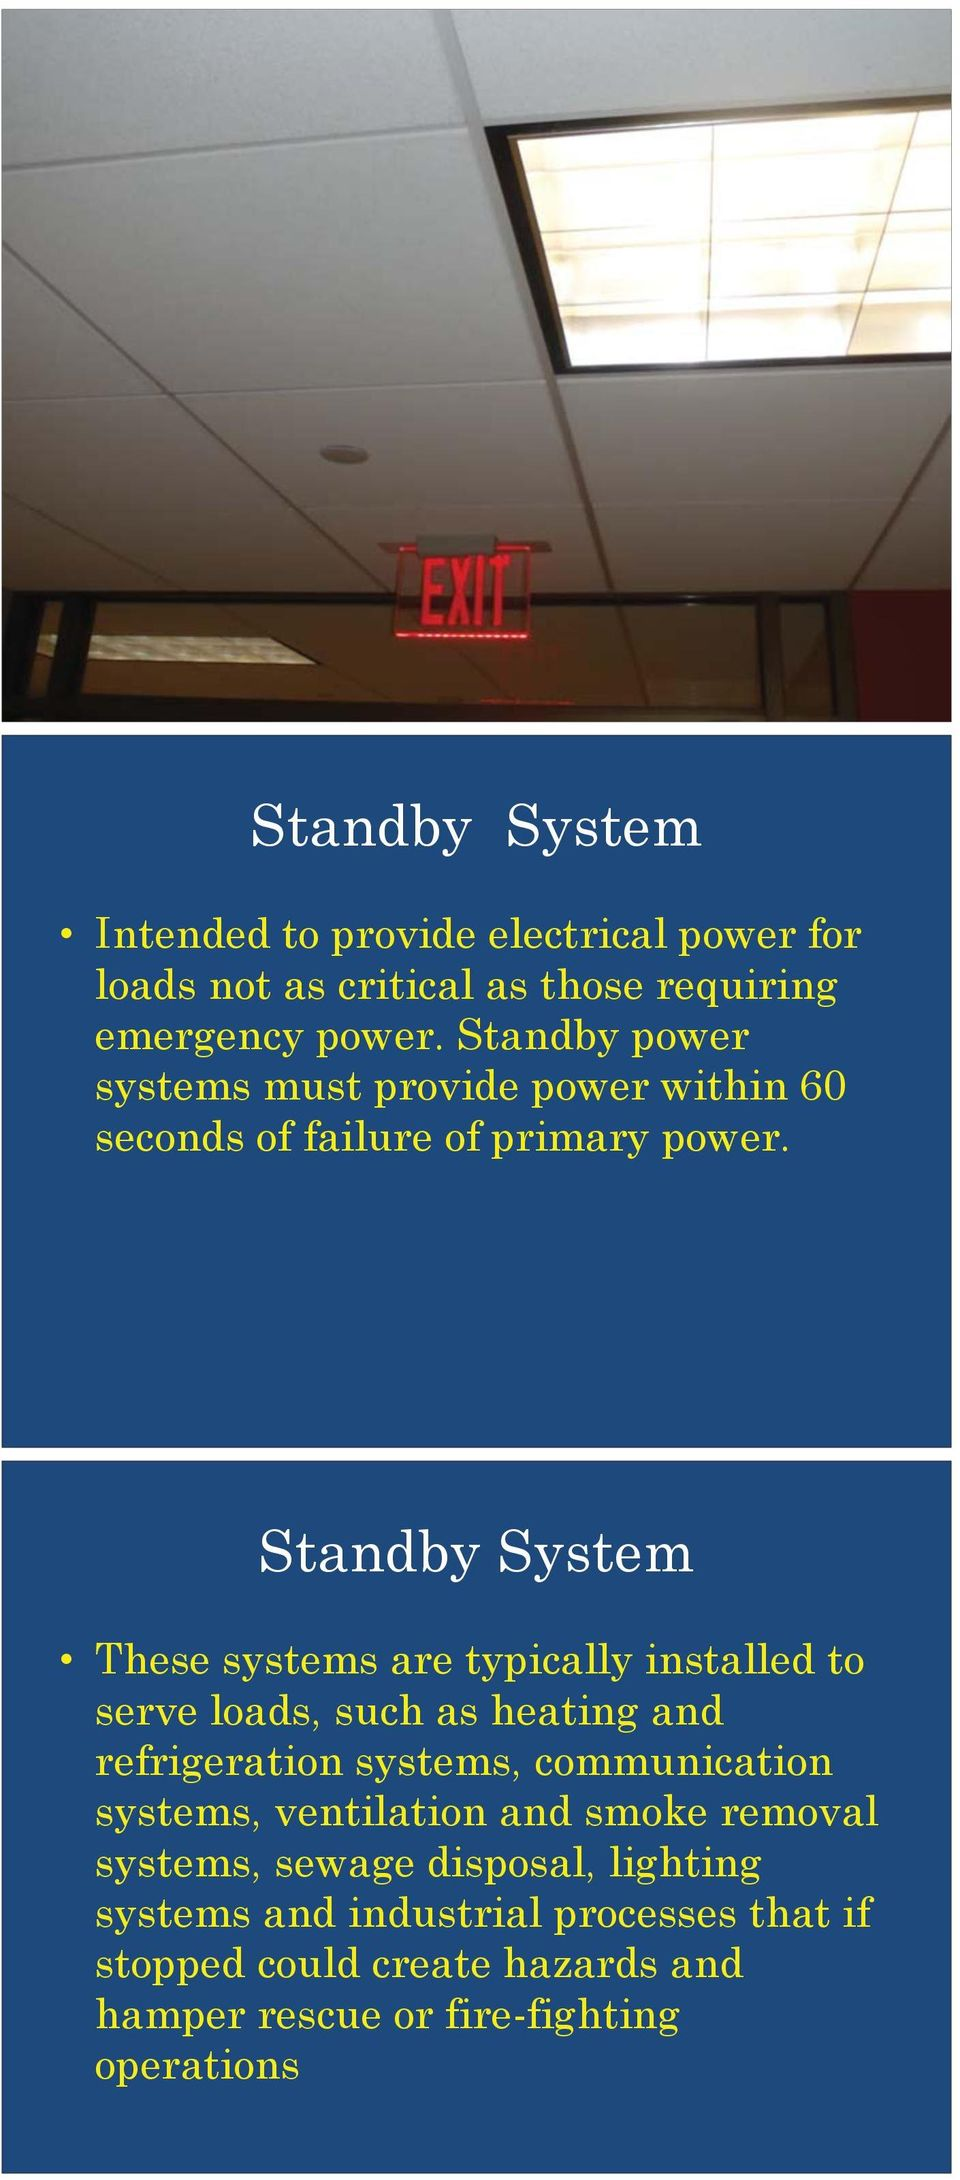 Standby System These systems are typically installed to serve loads, such as heating and refrigeration systems, communication